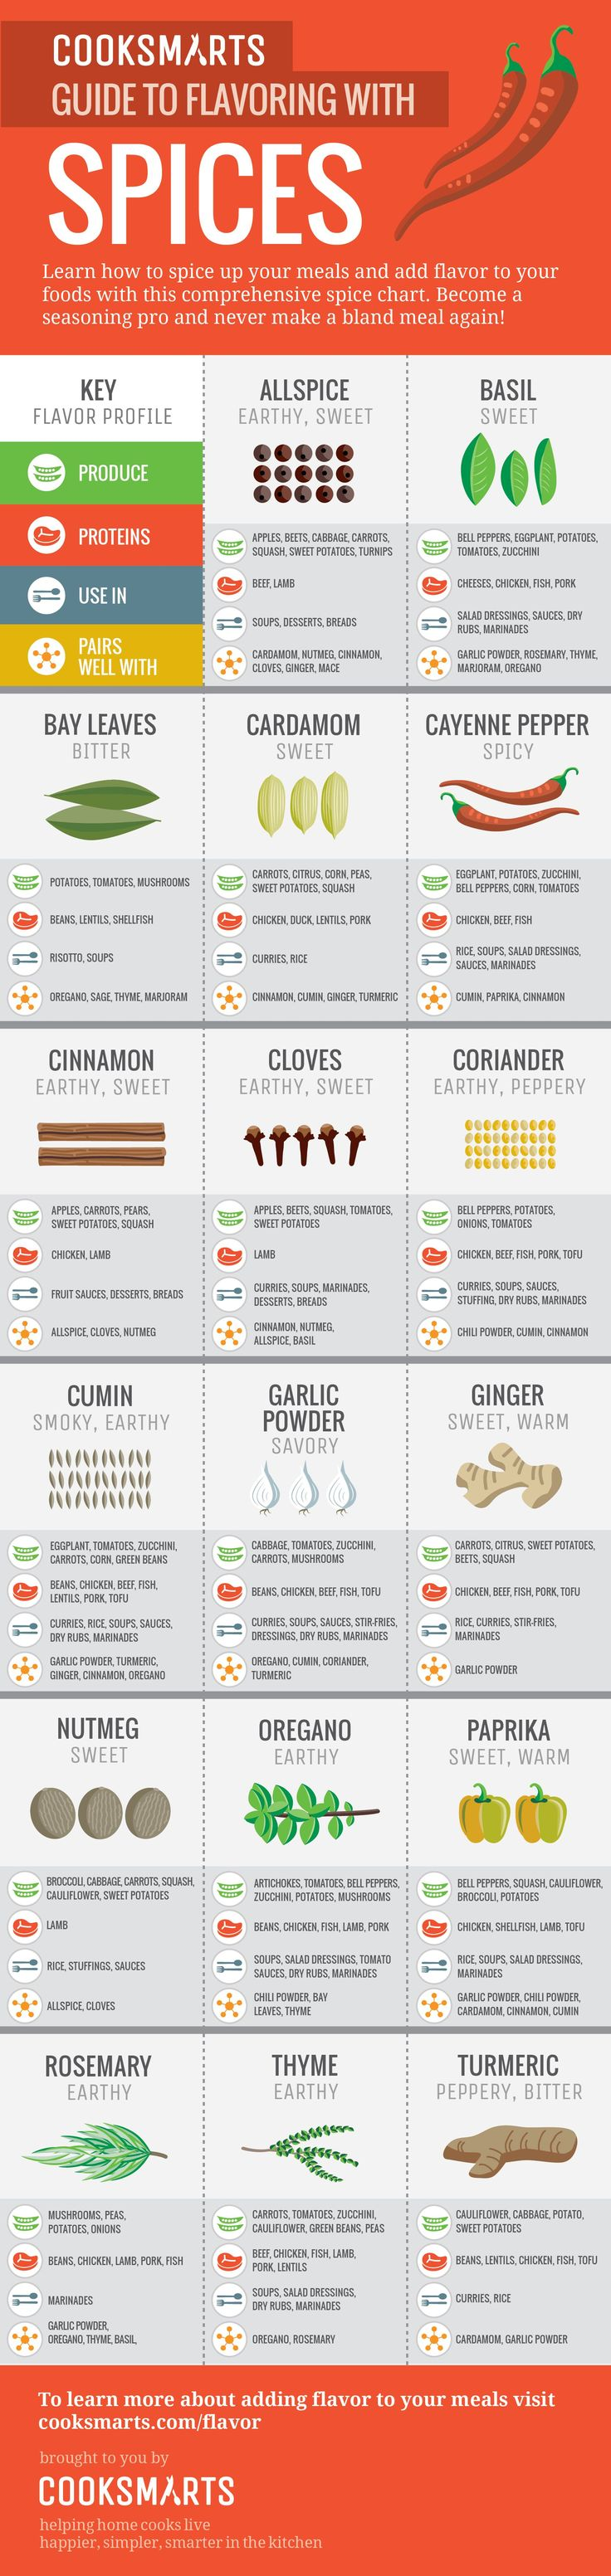 Spice up your life with this amazing spice chart! Not sure what you should sprinkle with saffron or cook with cumin? Well, wonder no more--this printable chart takes the guess work out of cooking.